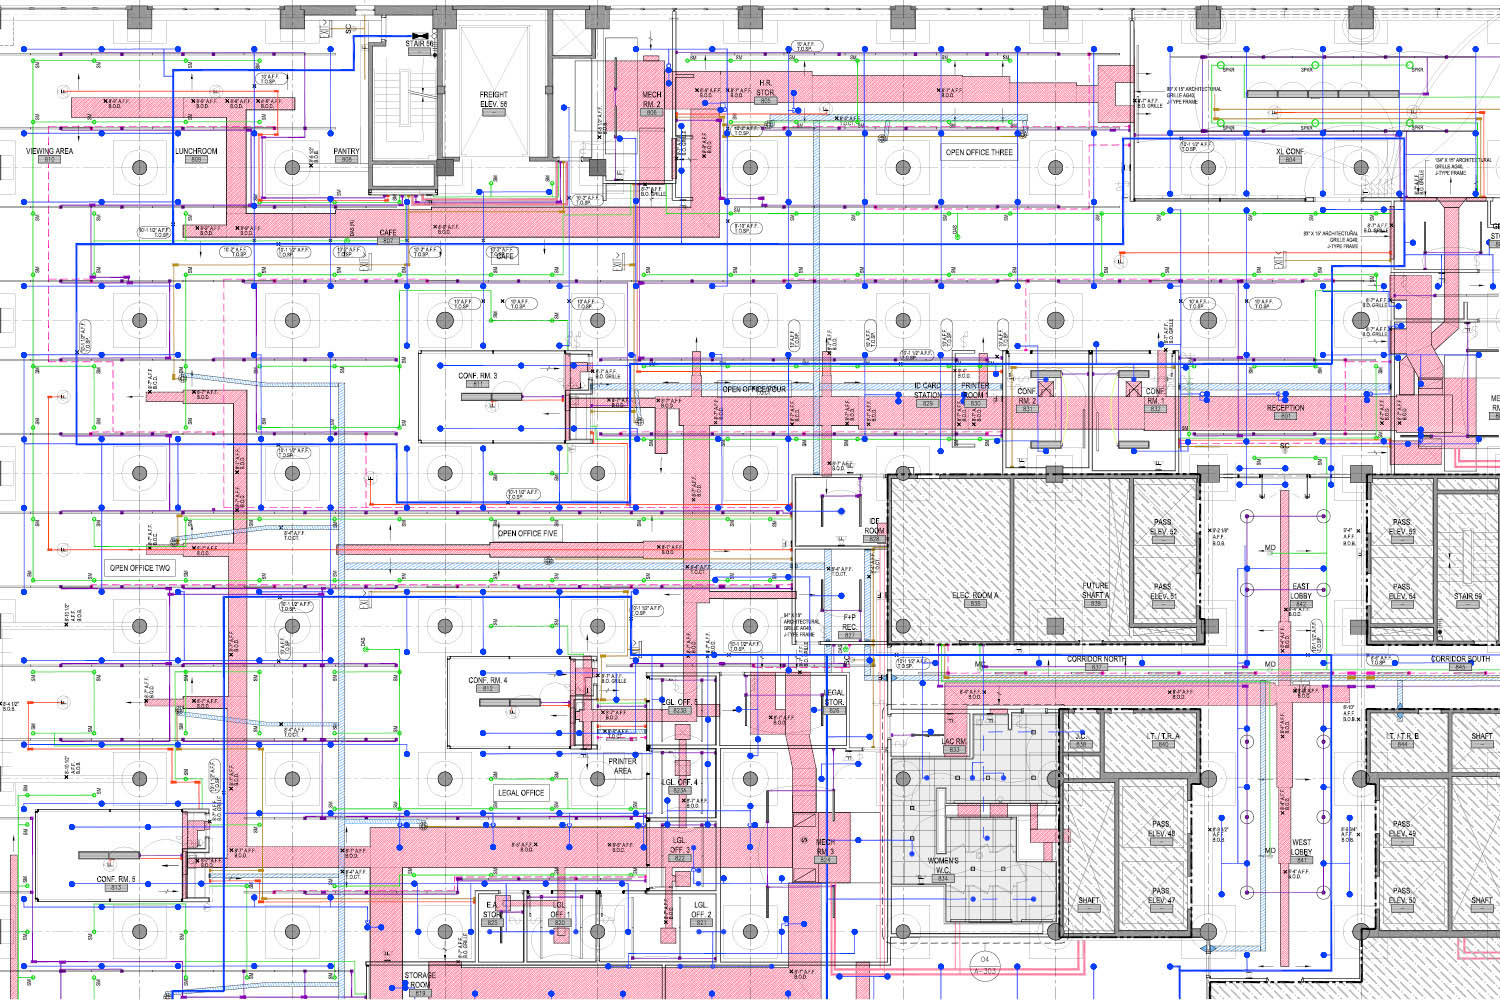 Reflected ceiling plan coordination drawing SM+H Architects LLP}